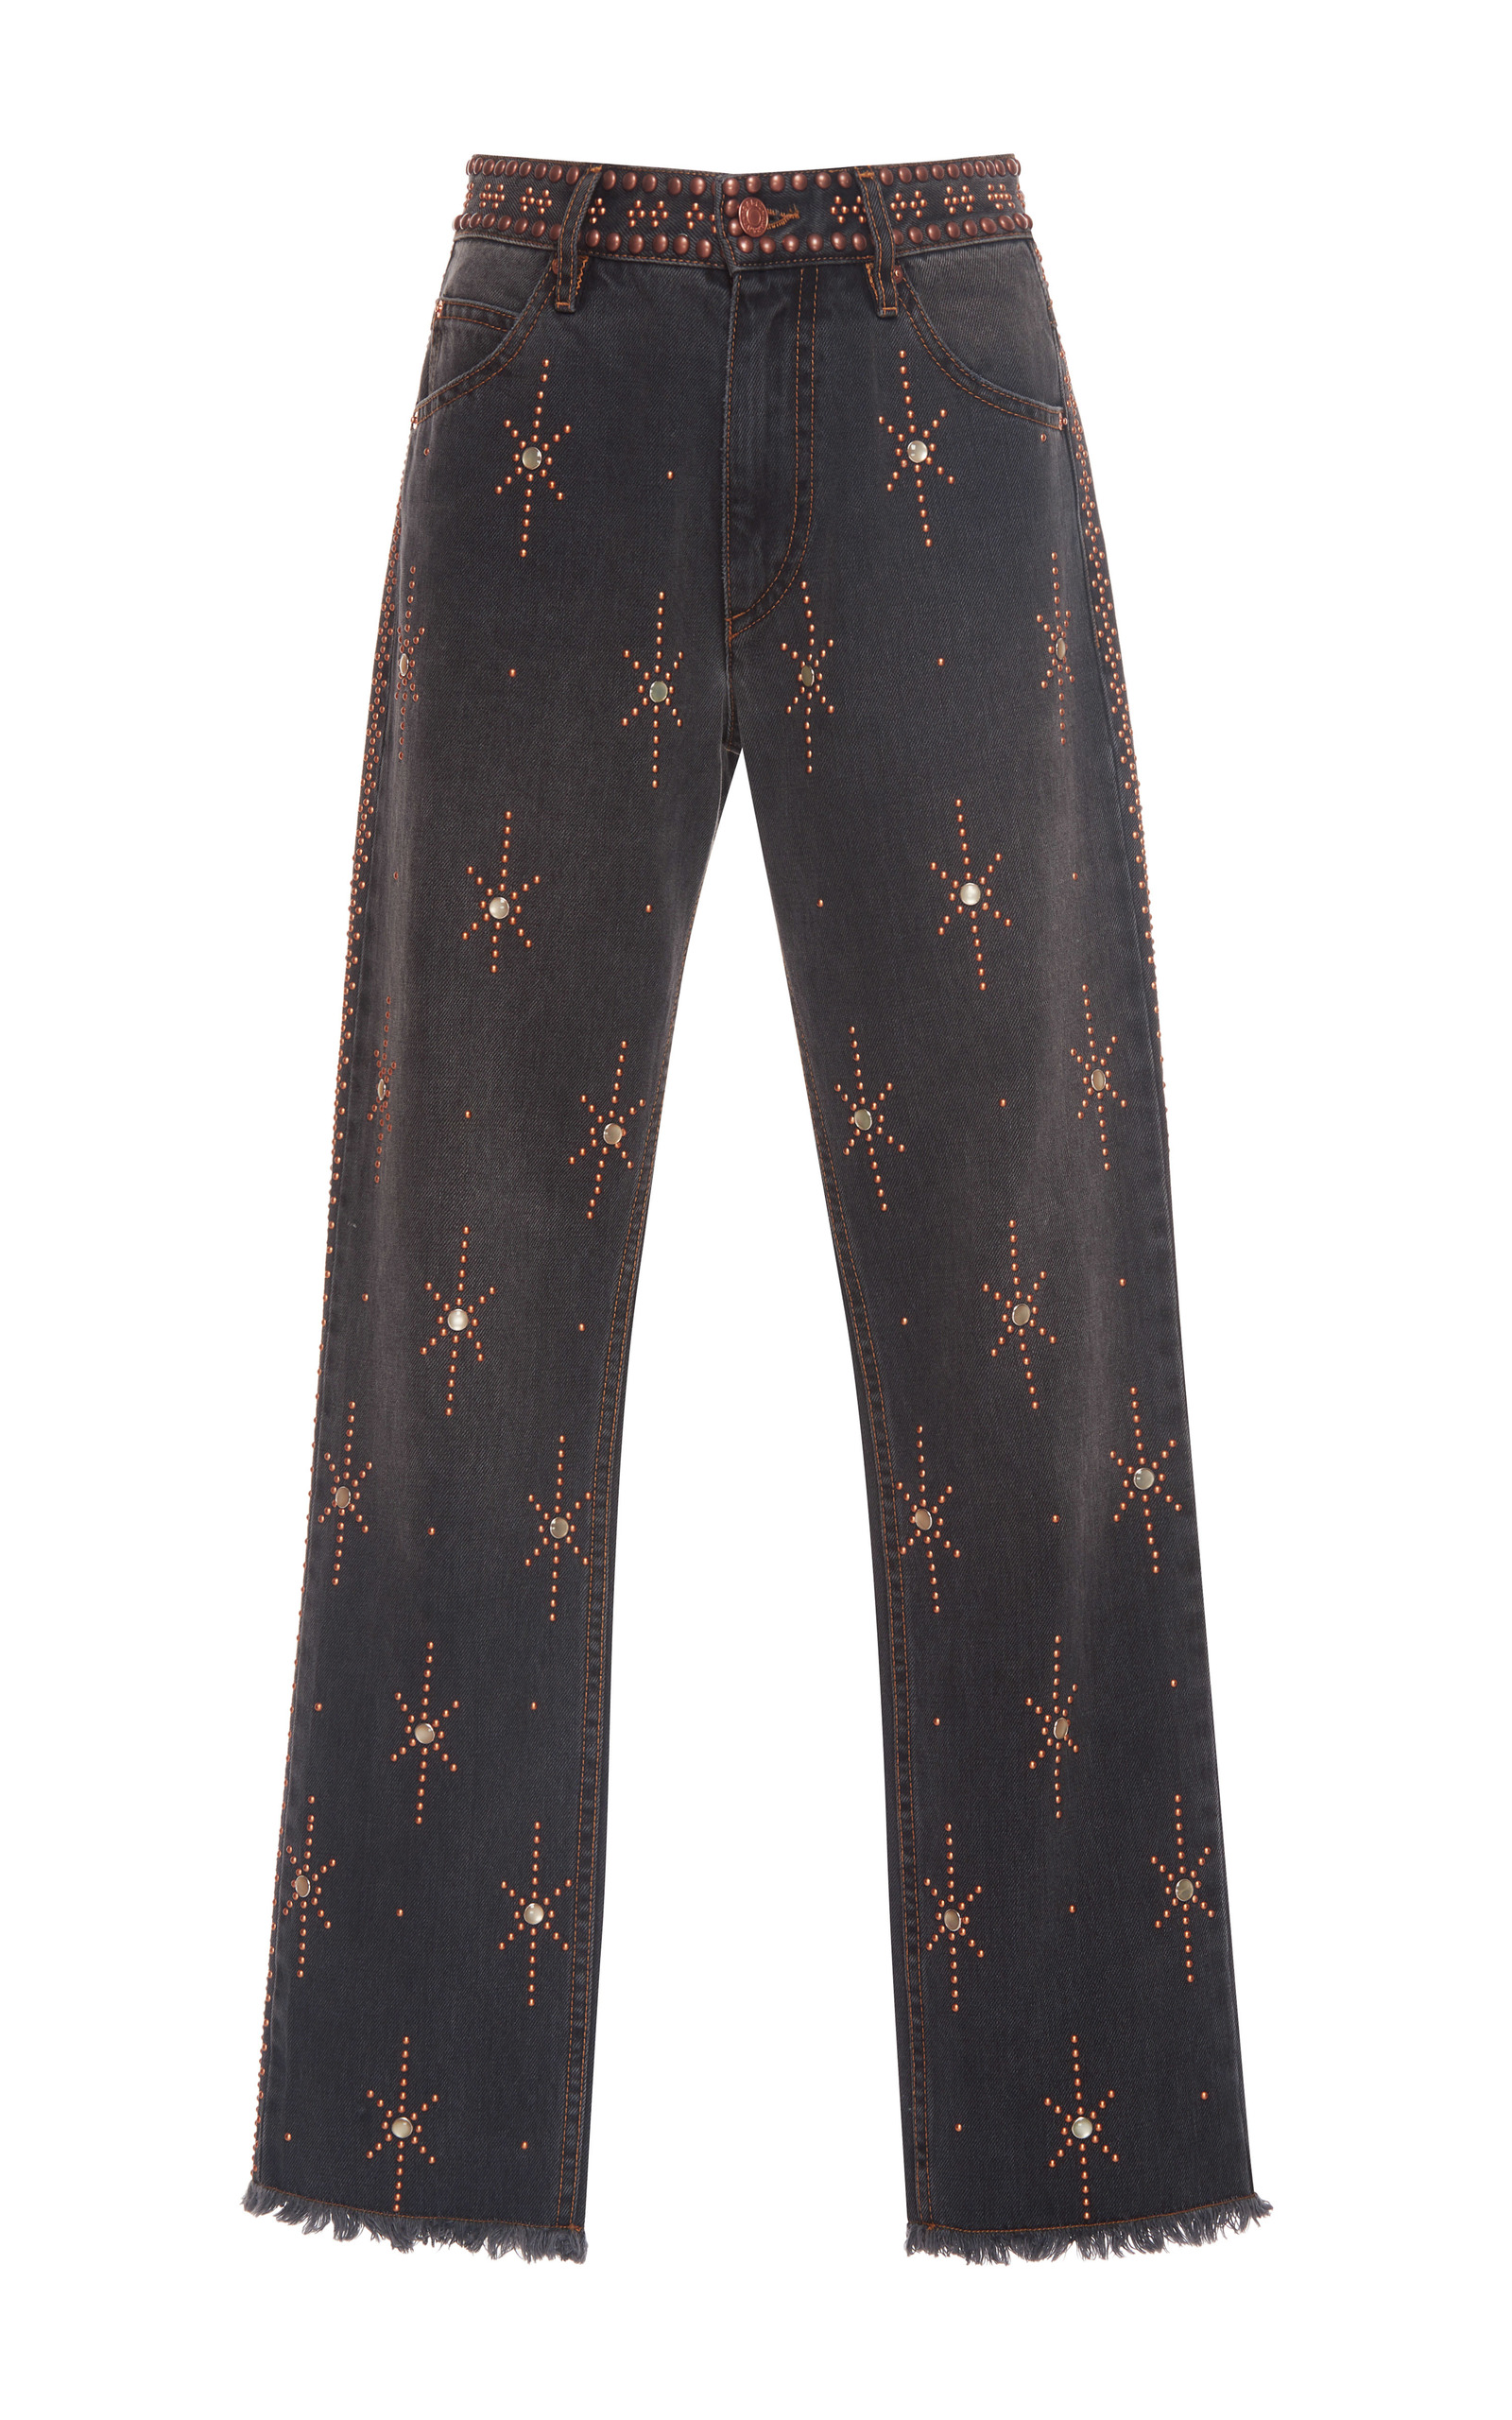 Nolan embellished jeans Isabel Marant Discount Looking For Free Shipping Amazing Price Cheap Sale Enjoy YqhP2fUyB